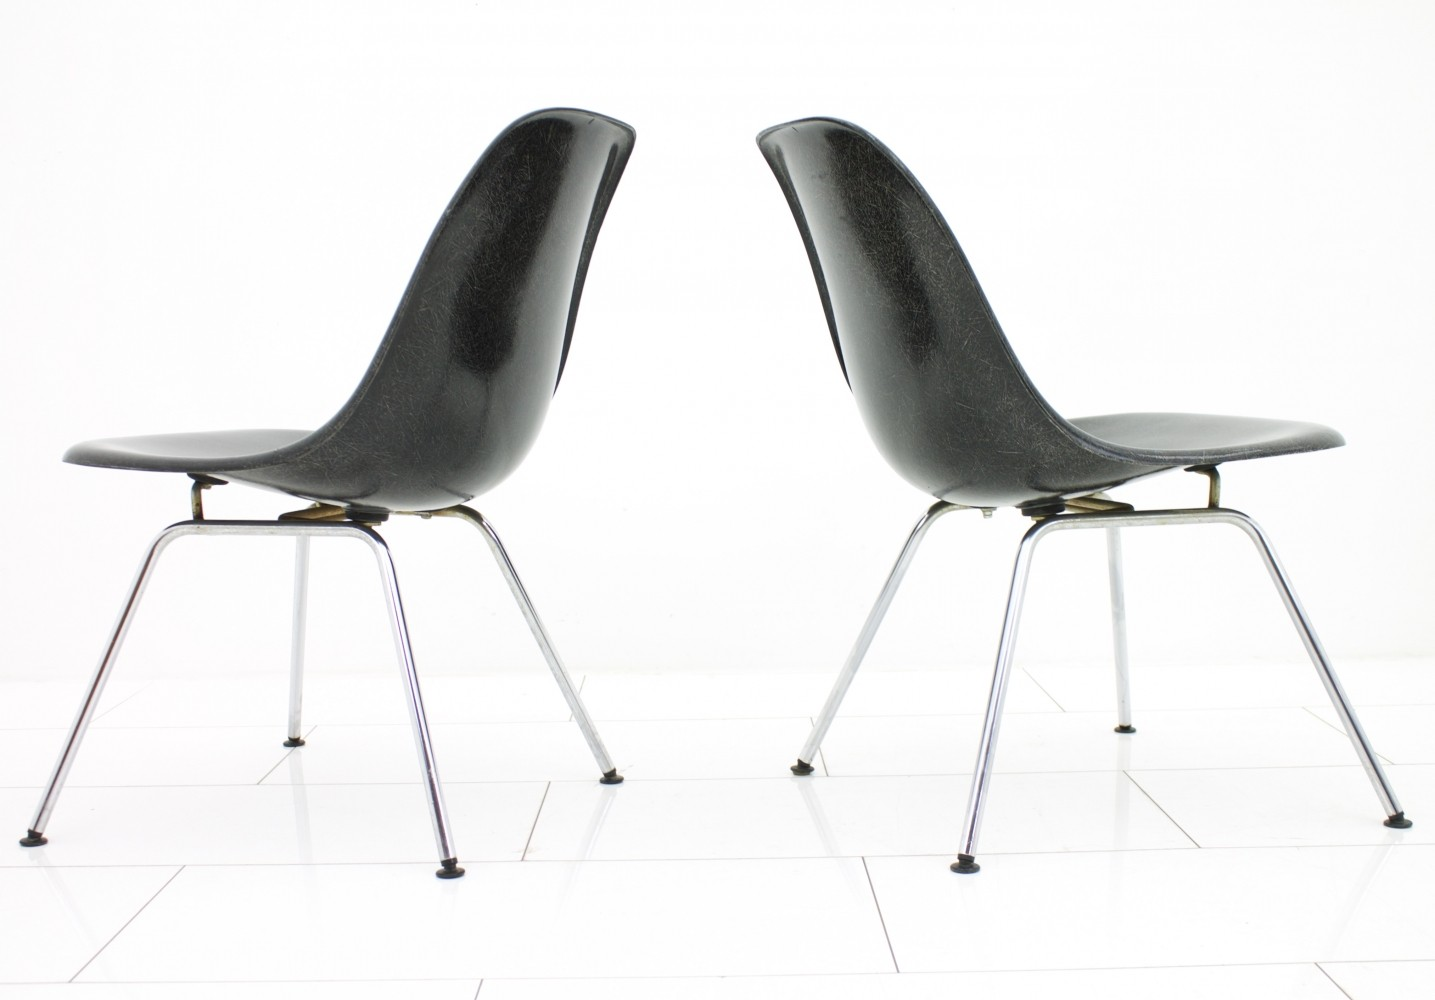 black fiberglass side shells with low h base by charles ray eames 57849. Black Bedroom Furniture Sets. Home Design Ideas